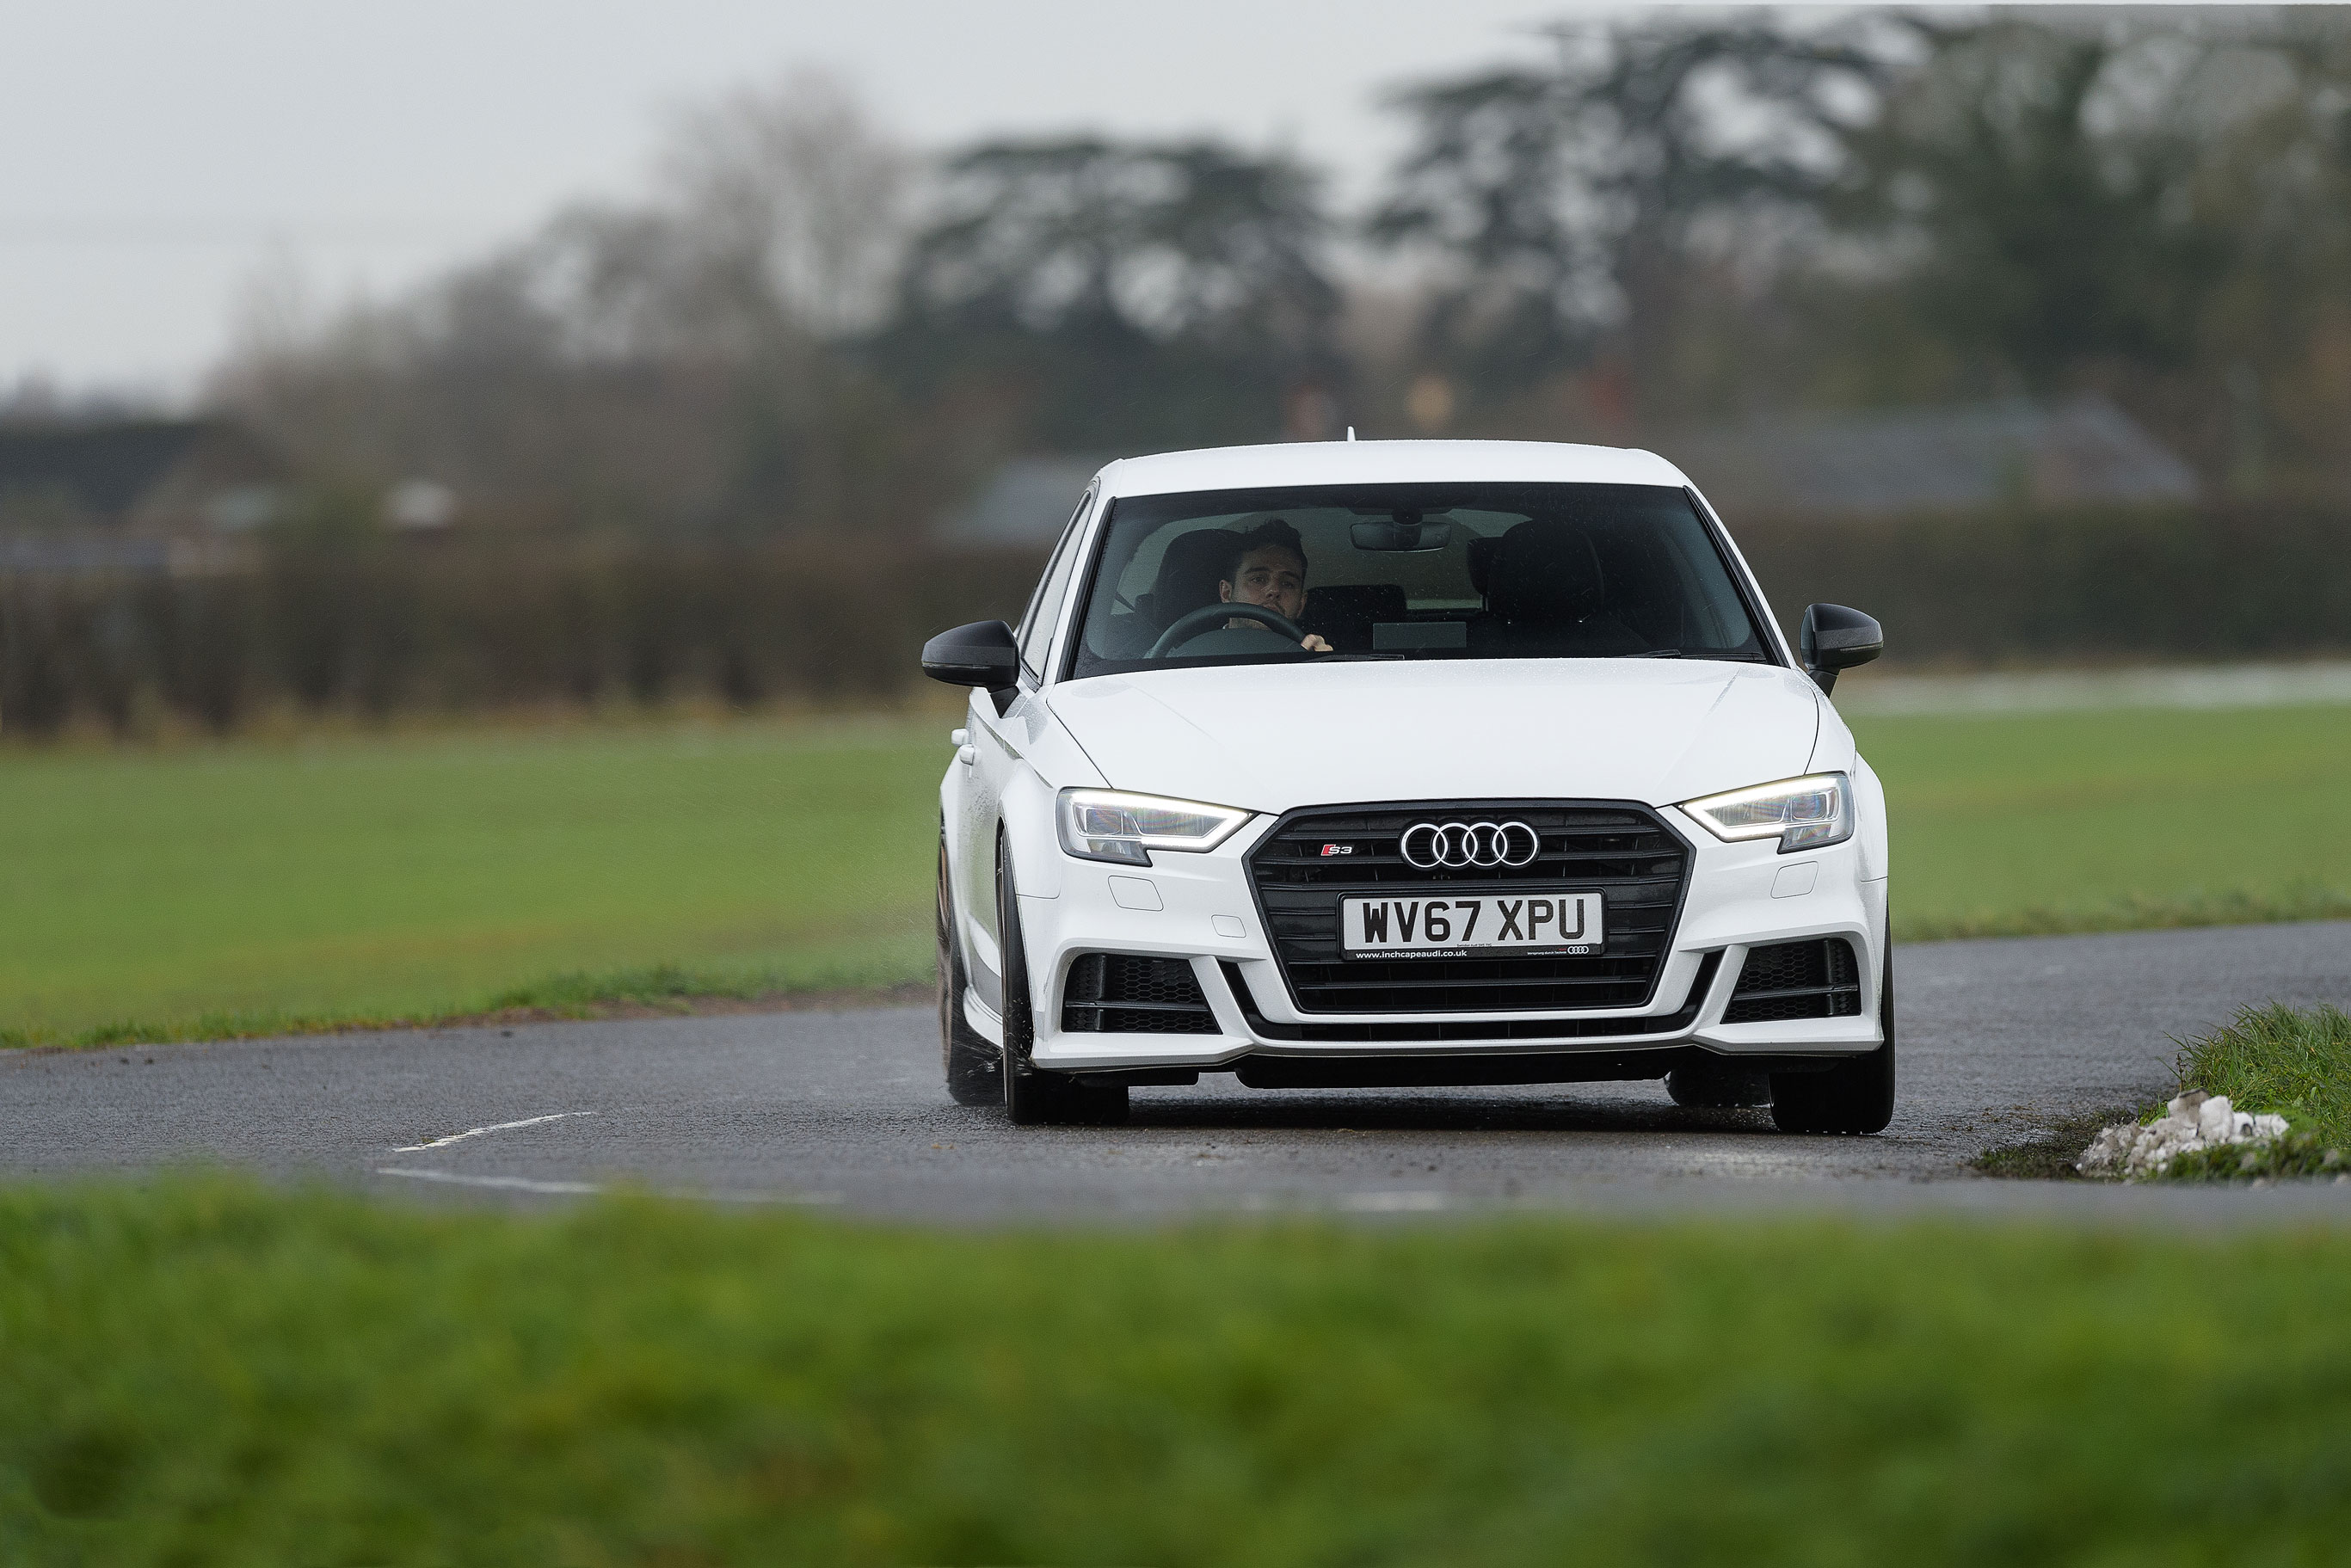 Revo Audi S3 Review Has 370bhp Ruined The Audi S Refined Character Evo